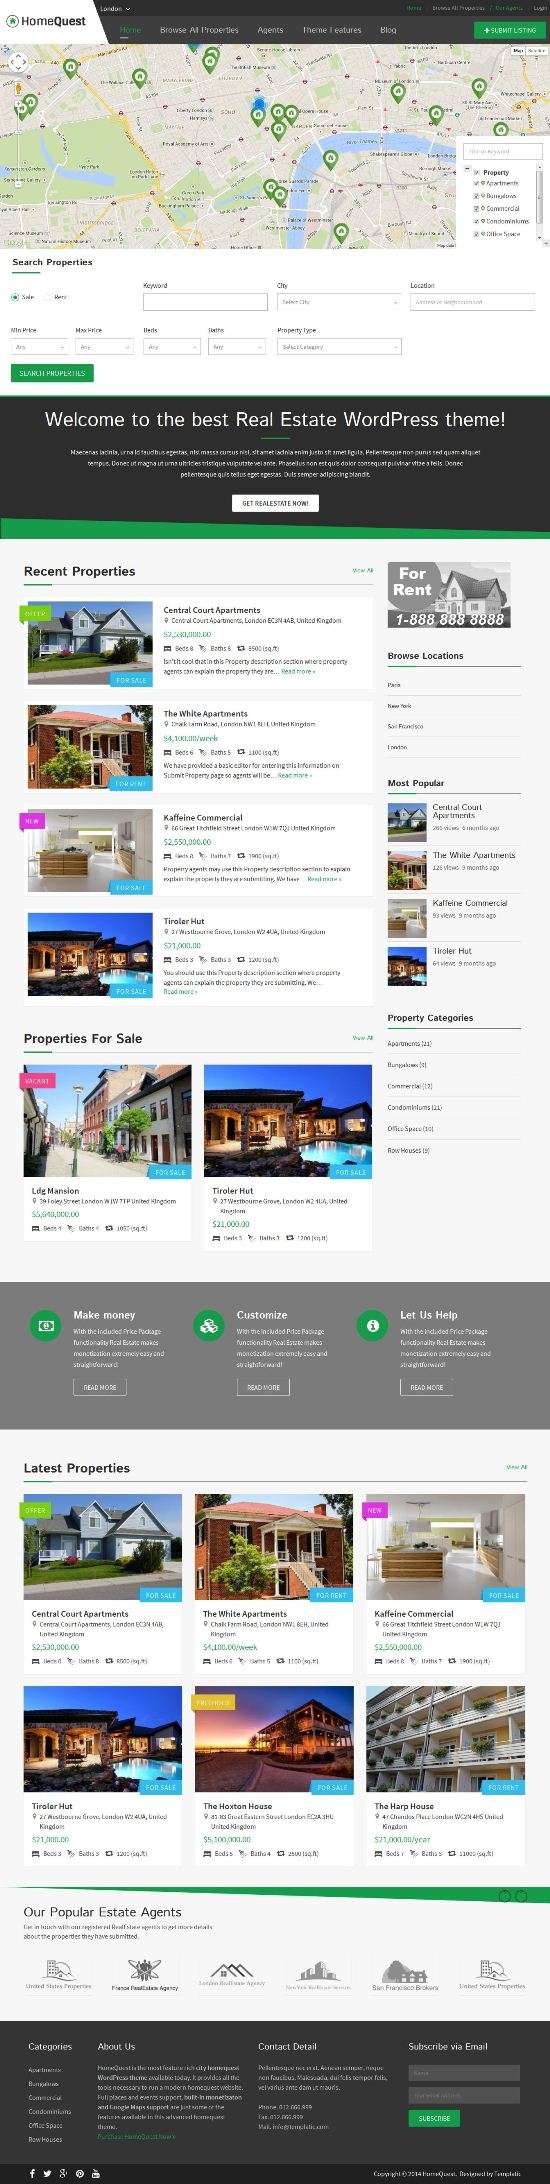 homequest-template-real-estate-directory-theme-01